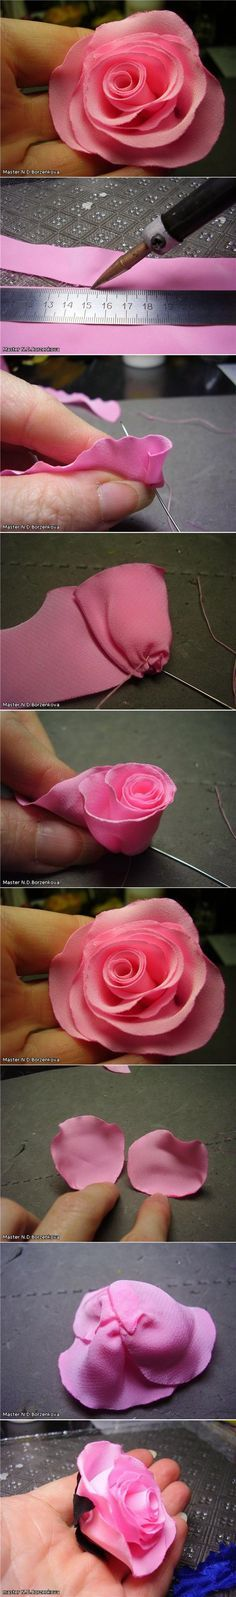 DIY Pretty Fabric Rose - vma.